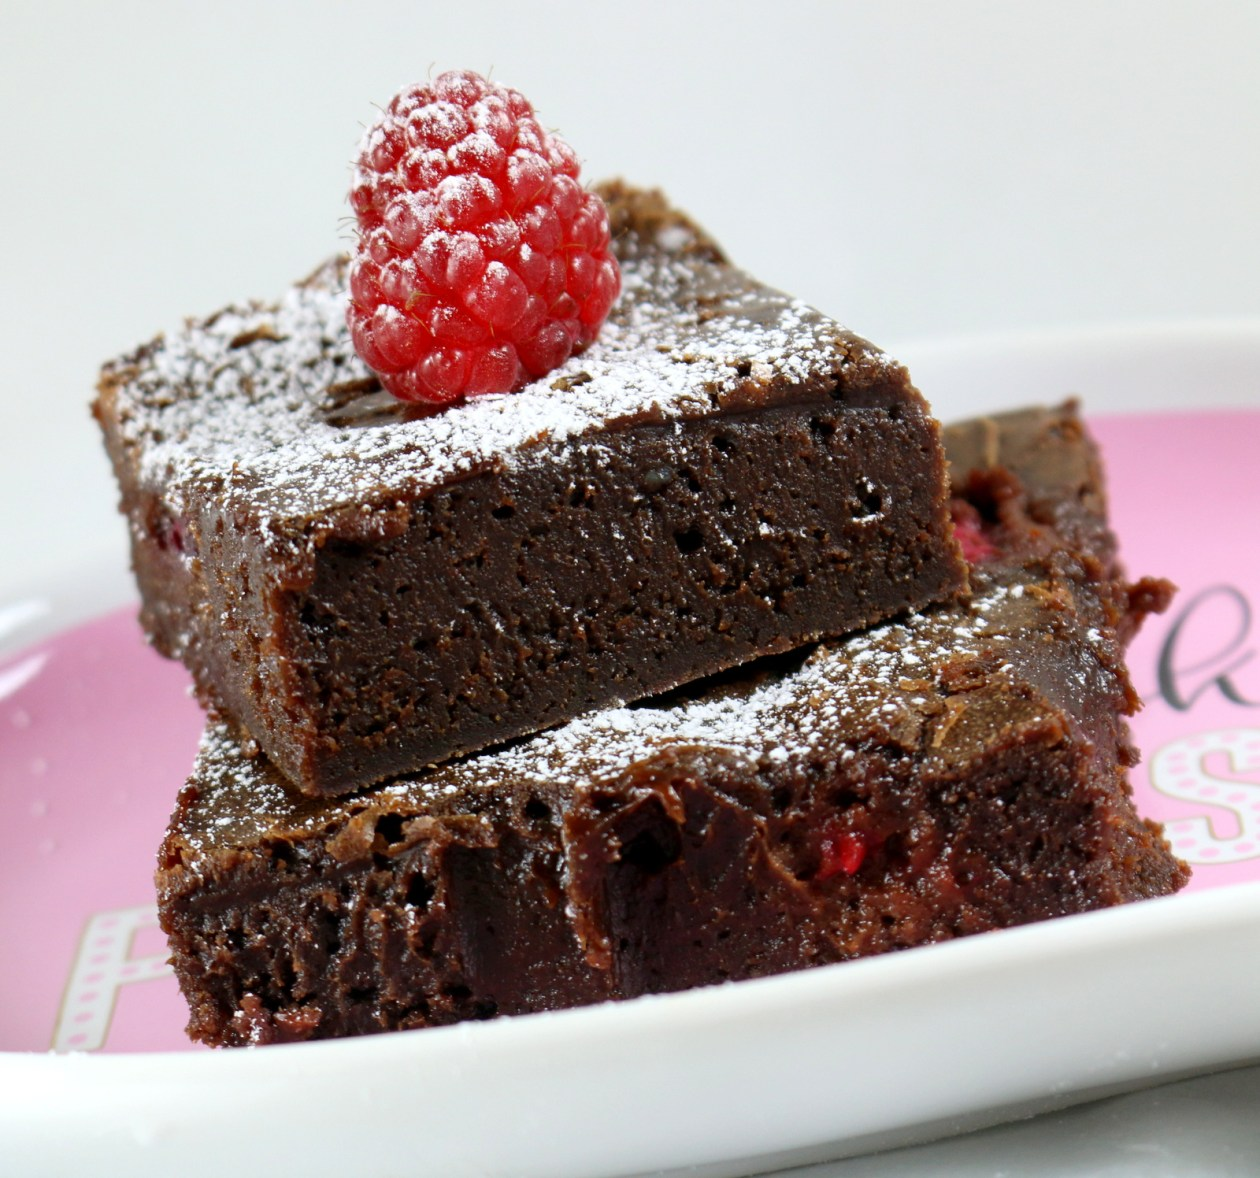 fudge brownies from the best food blog 5starcookies-enjoy and share 5starcookies recipe